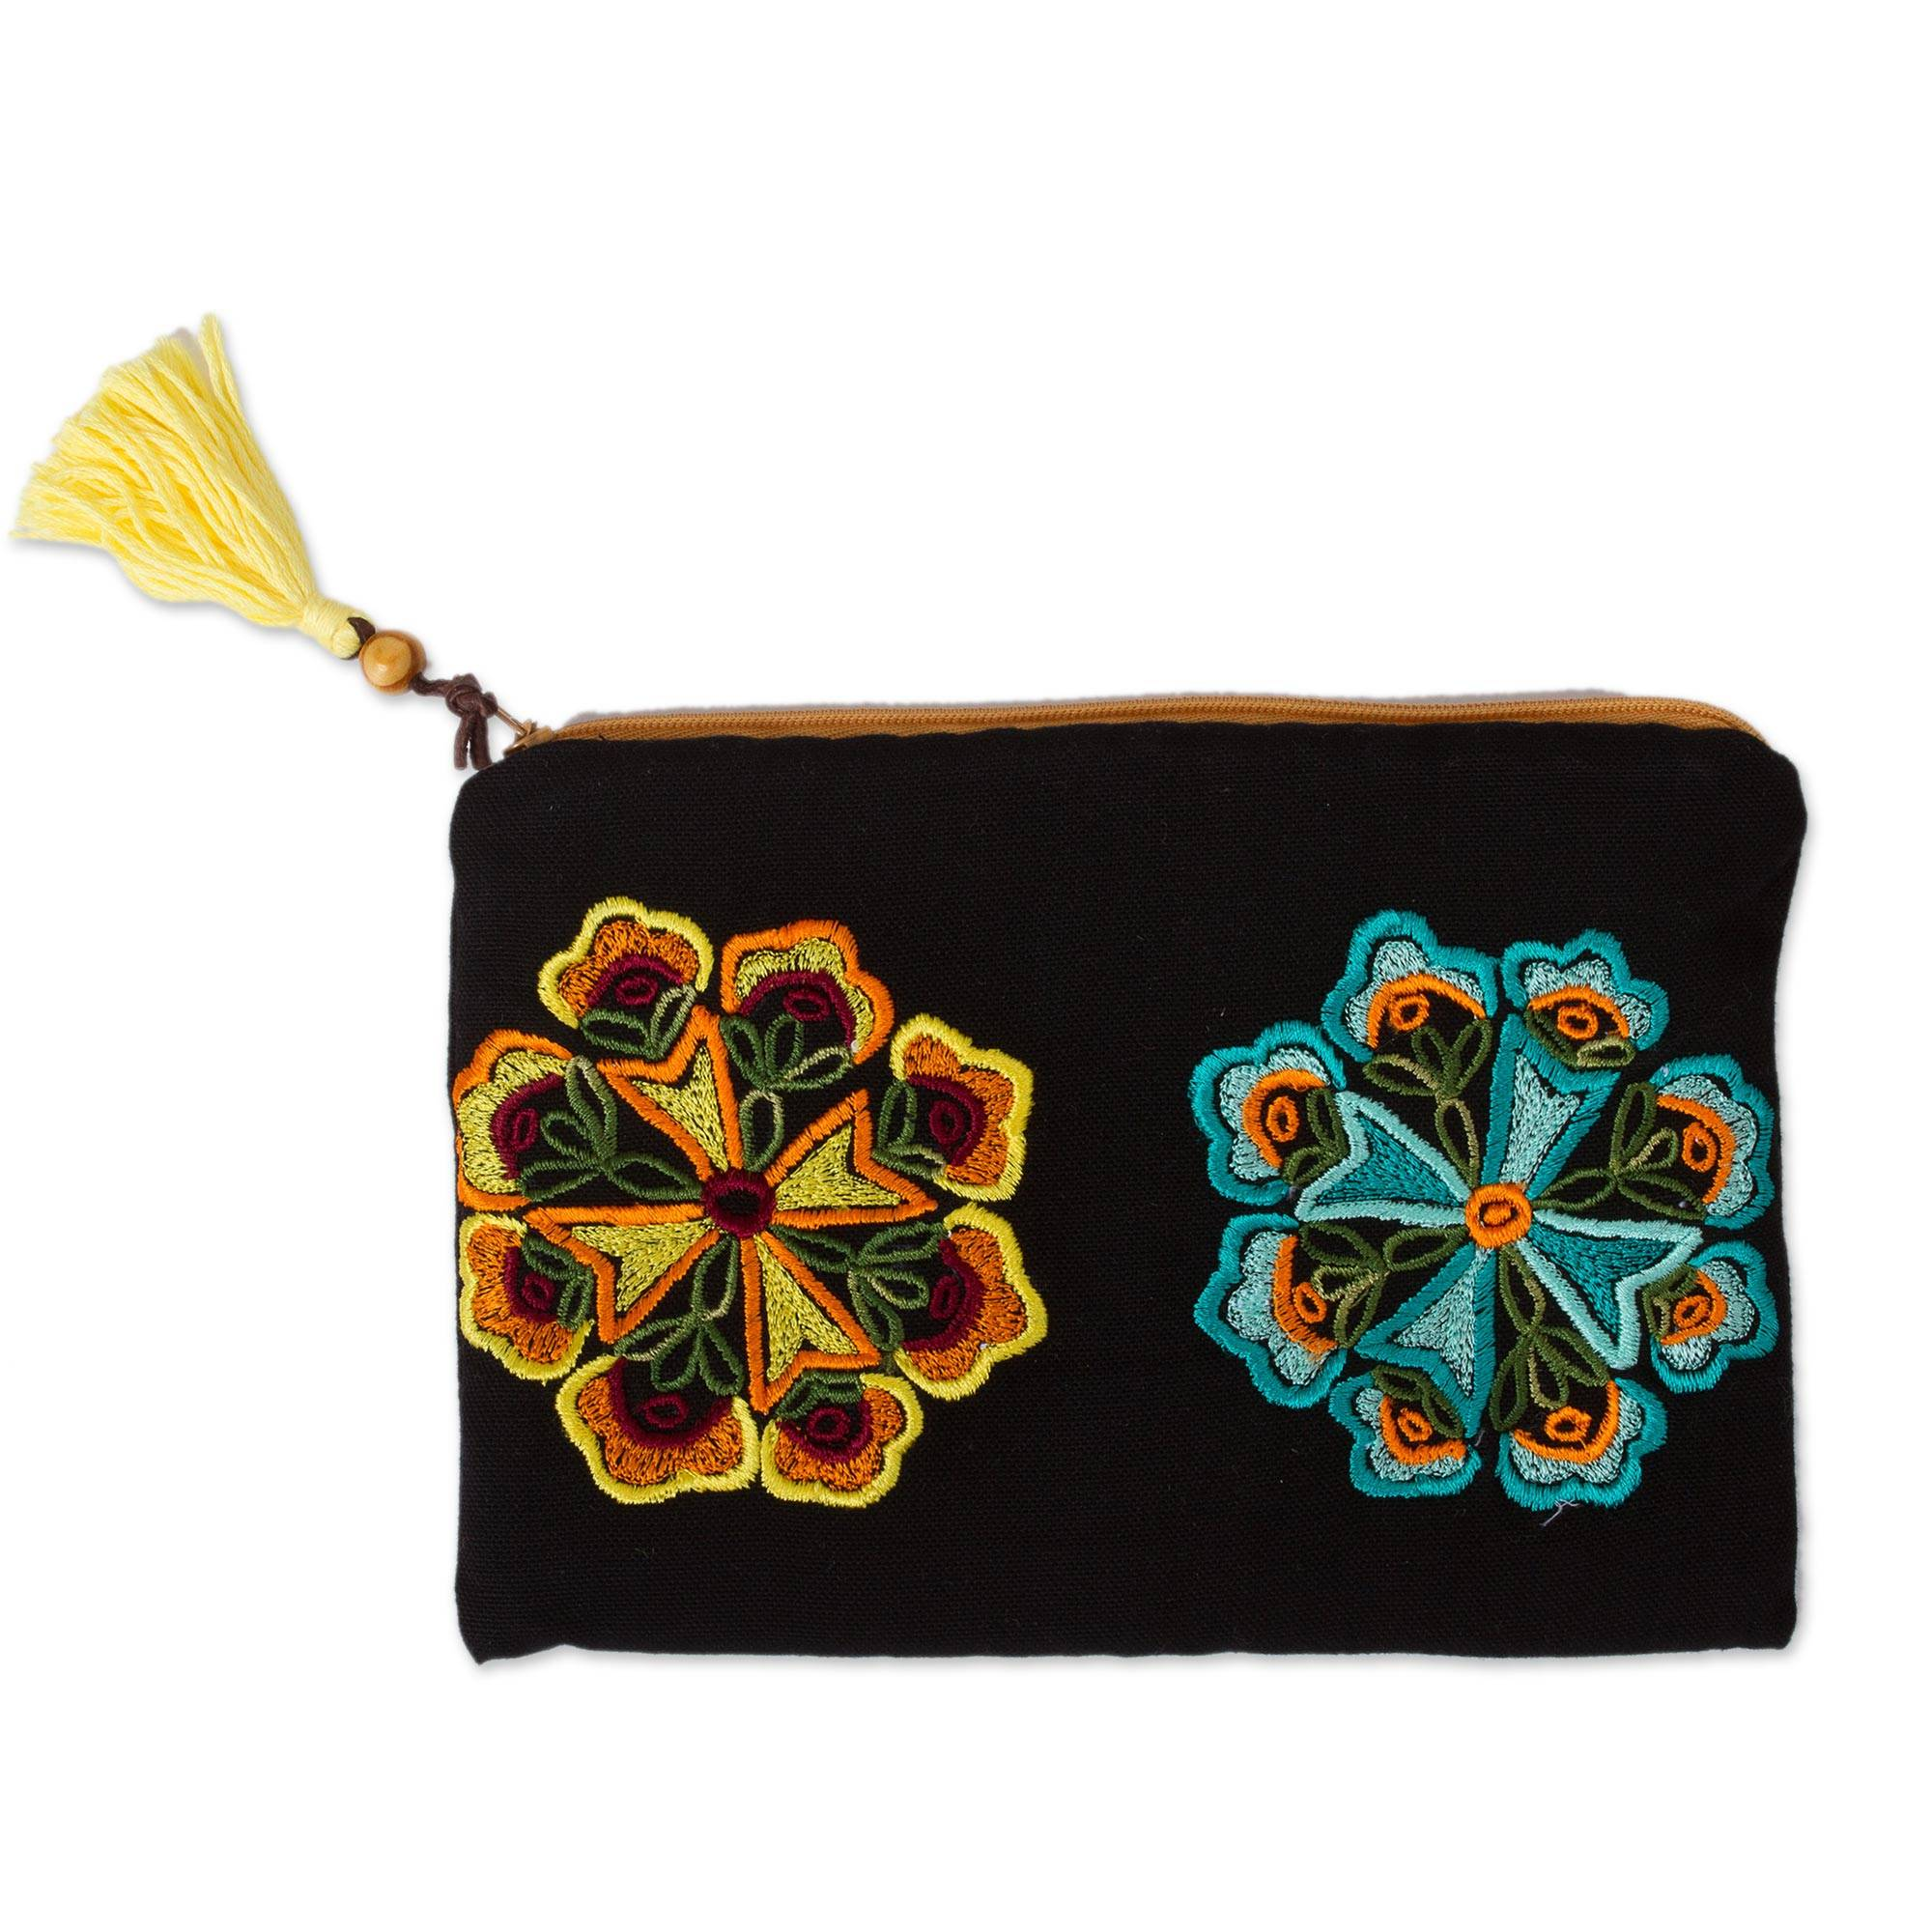 c279c3bea3 Black Cotton Hand Embroidered Floral Motif Cosmetic Bag - Brilliant ...